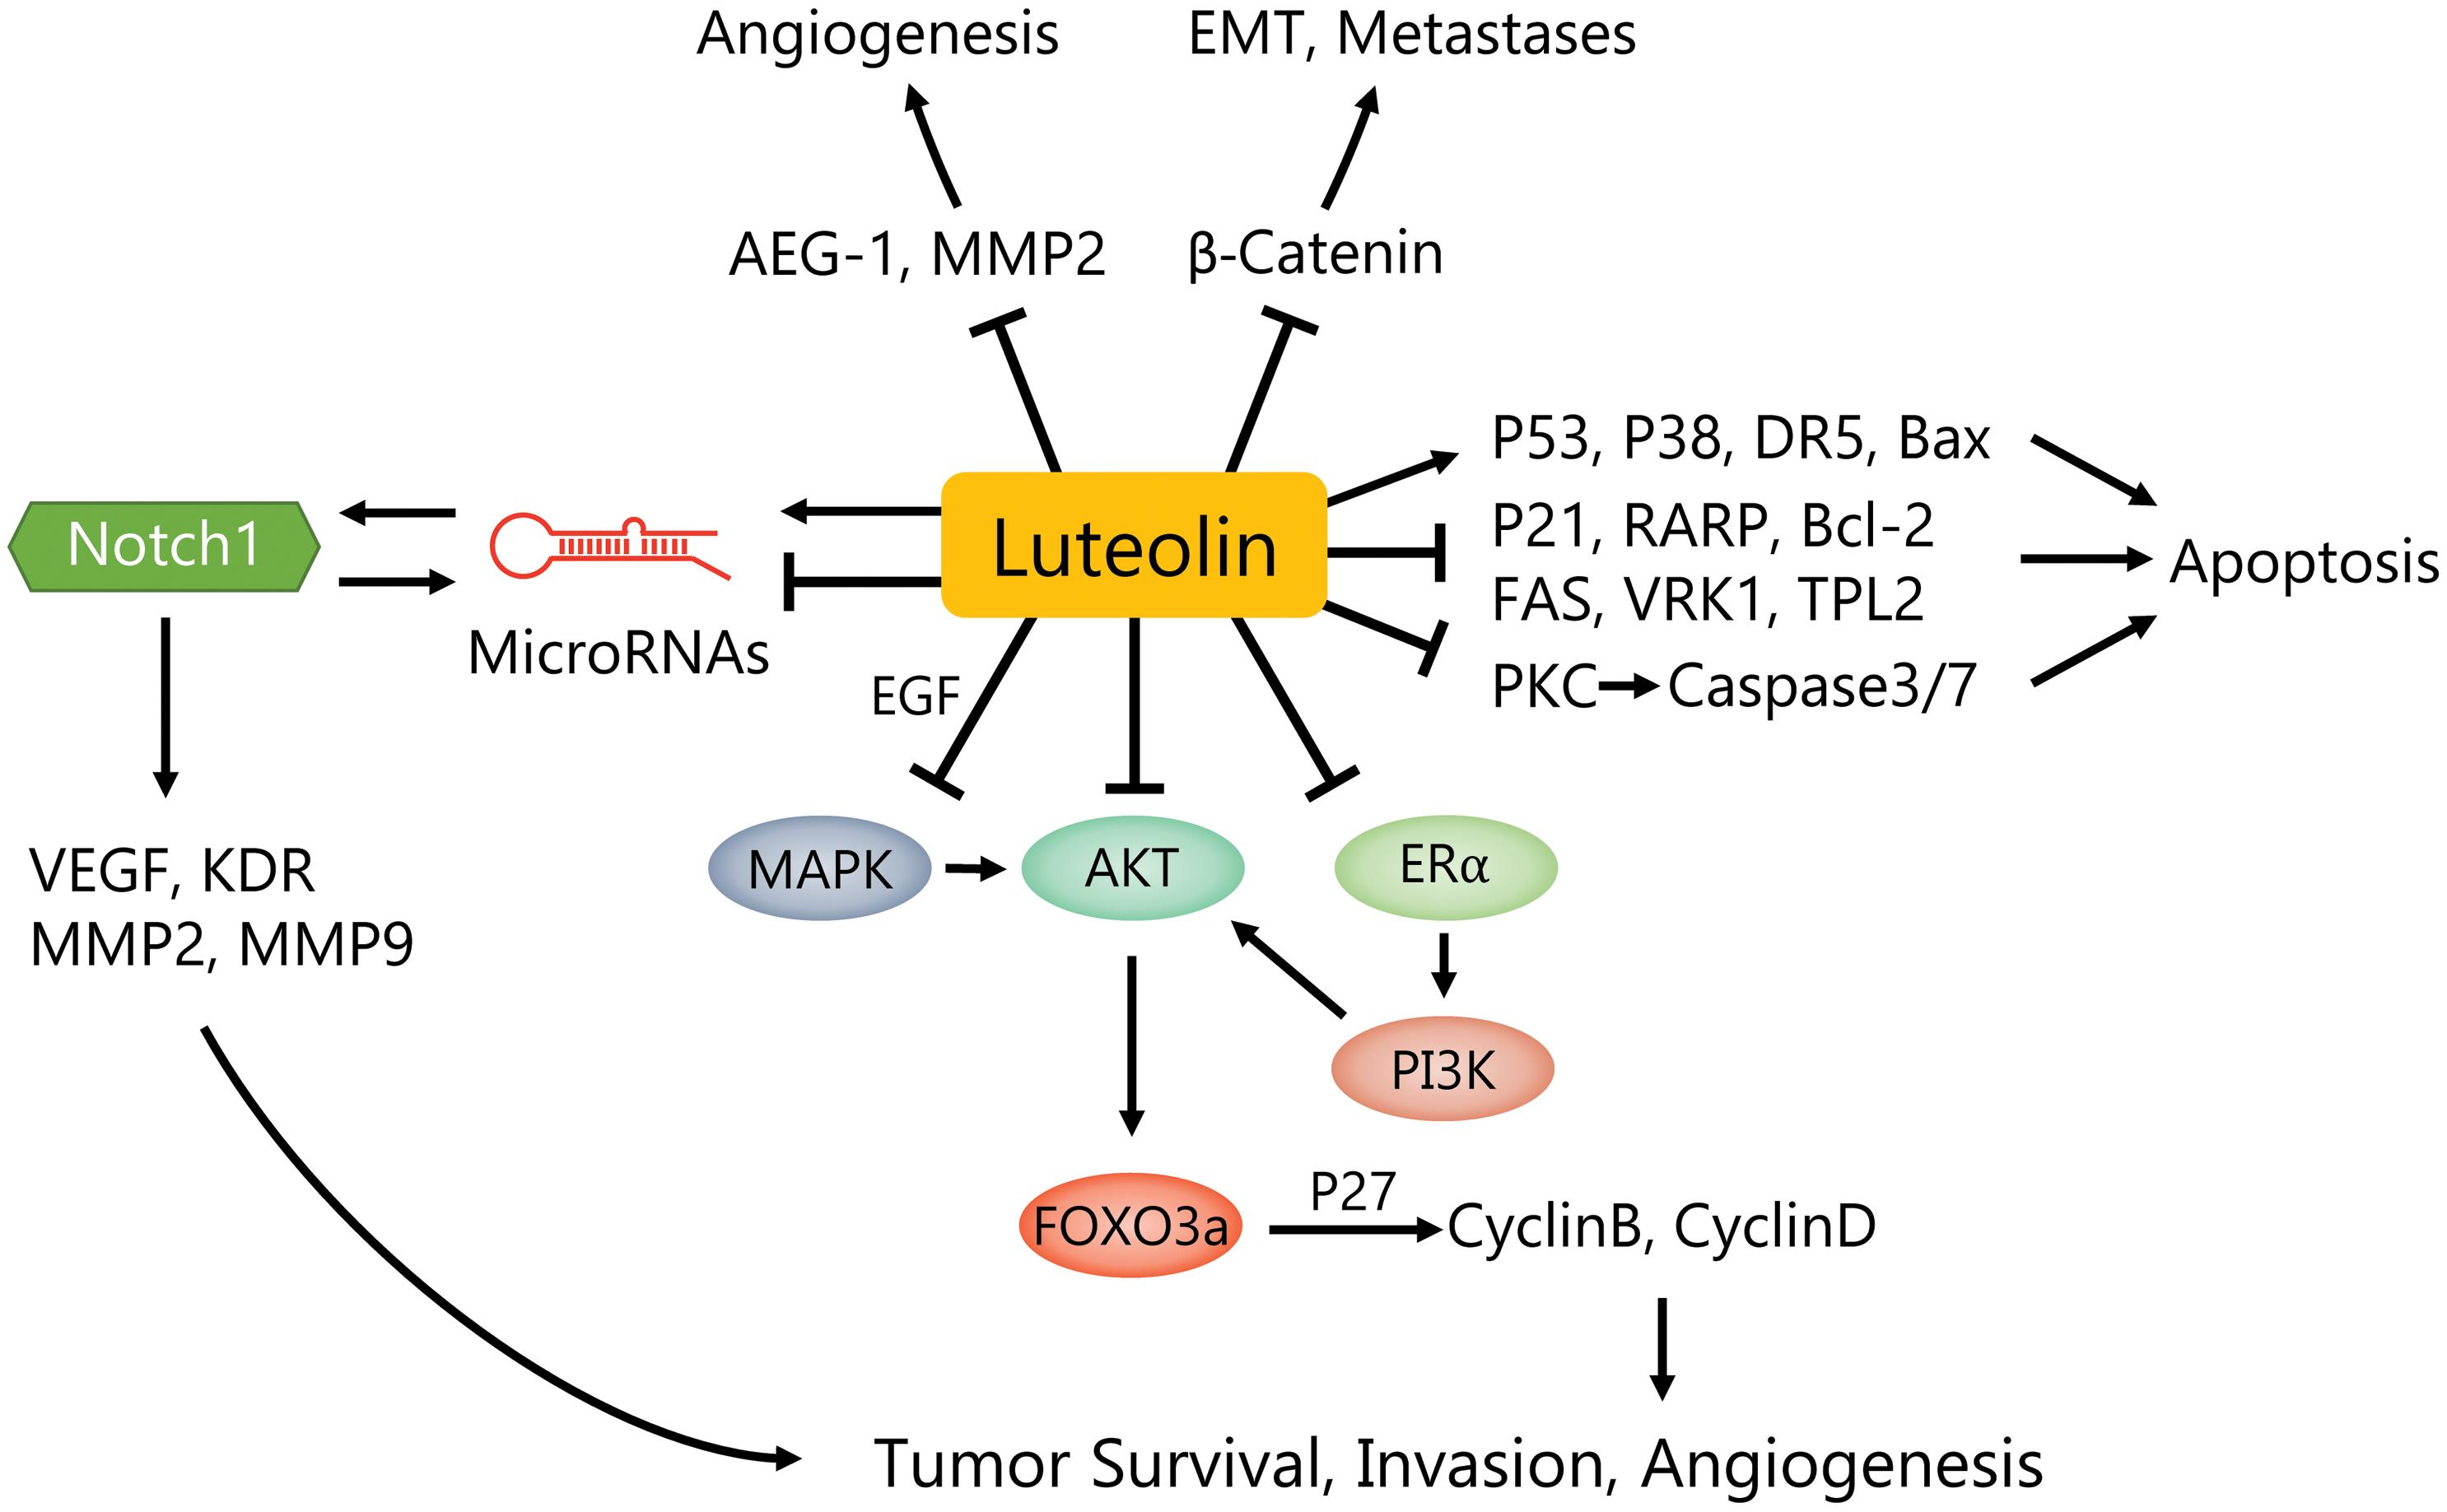 Luteolin modulates the signaling pathways and inhibits the growth and migration as well as promotes apoptosis of breast cancer cells.